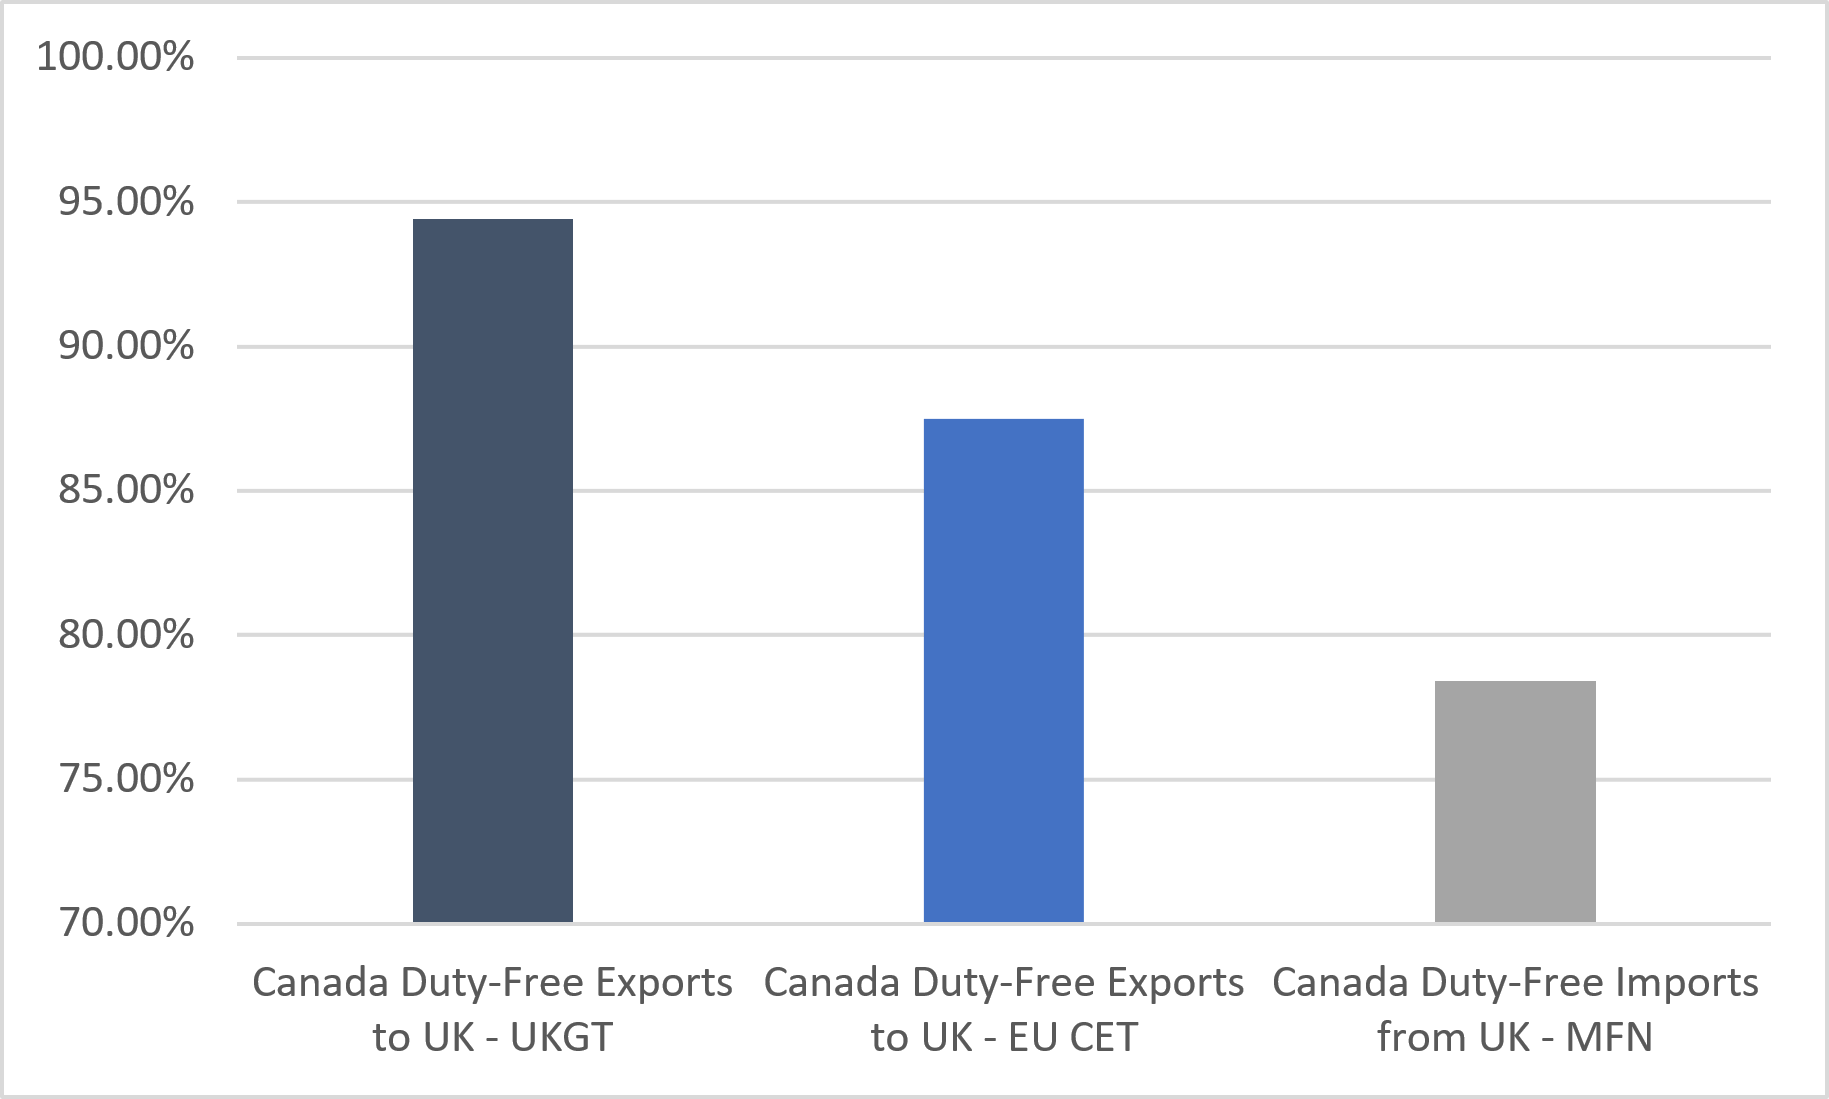 Data: Department of Finance Canada, the UK Department of International Trade, and Global Trade Atlas